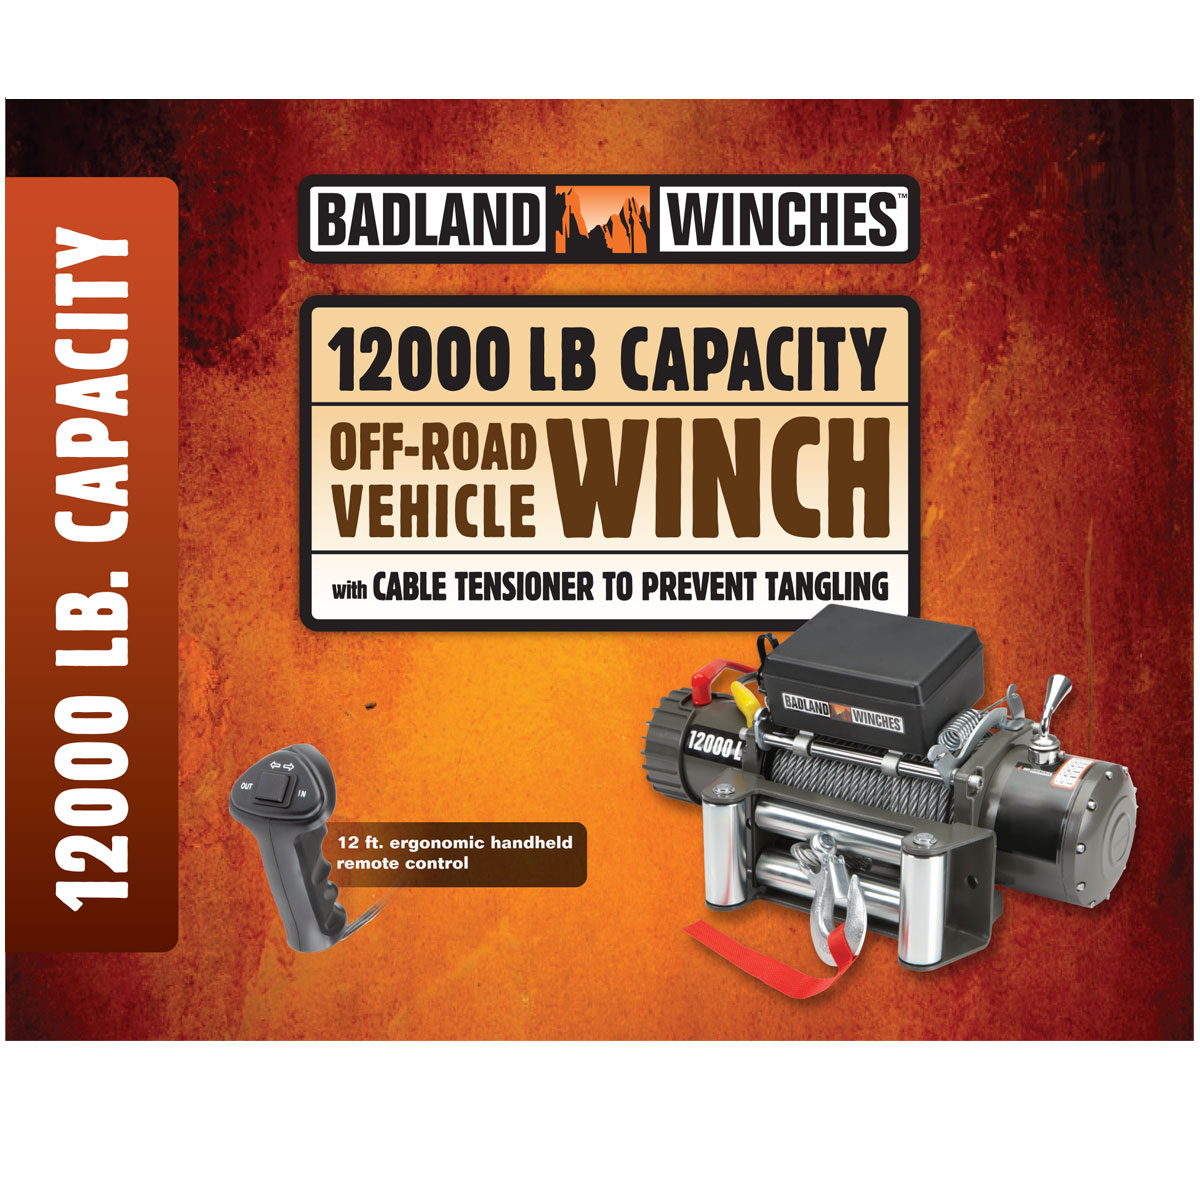 Badlands winch coupon / Maplestory 3x exp coupon stack